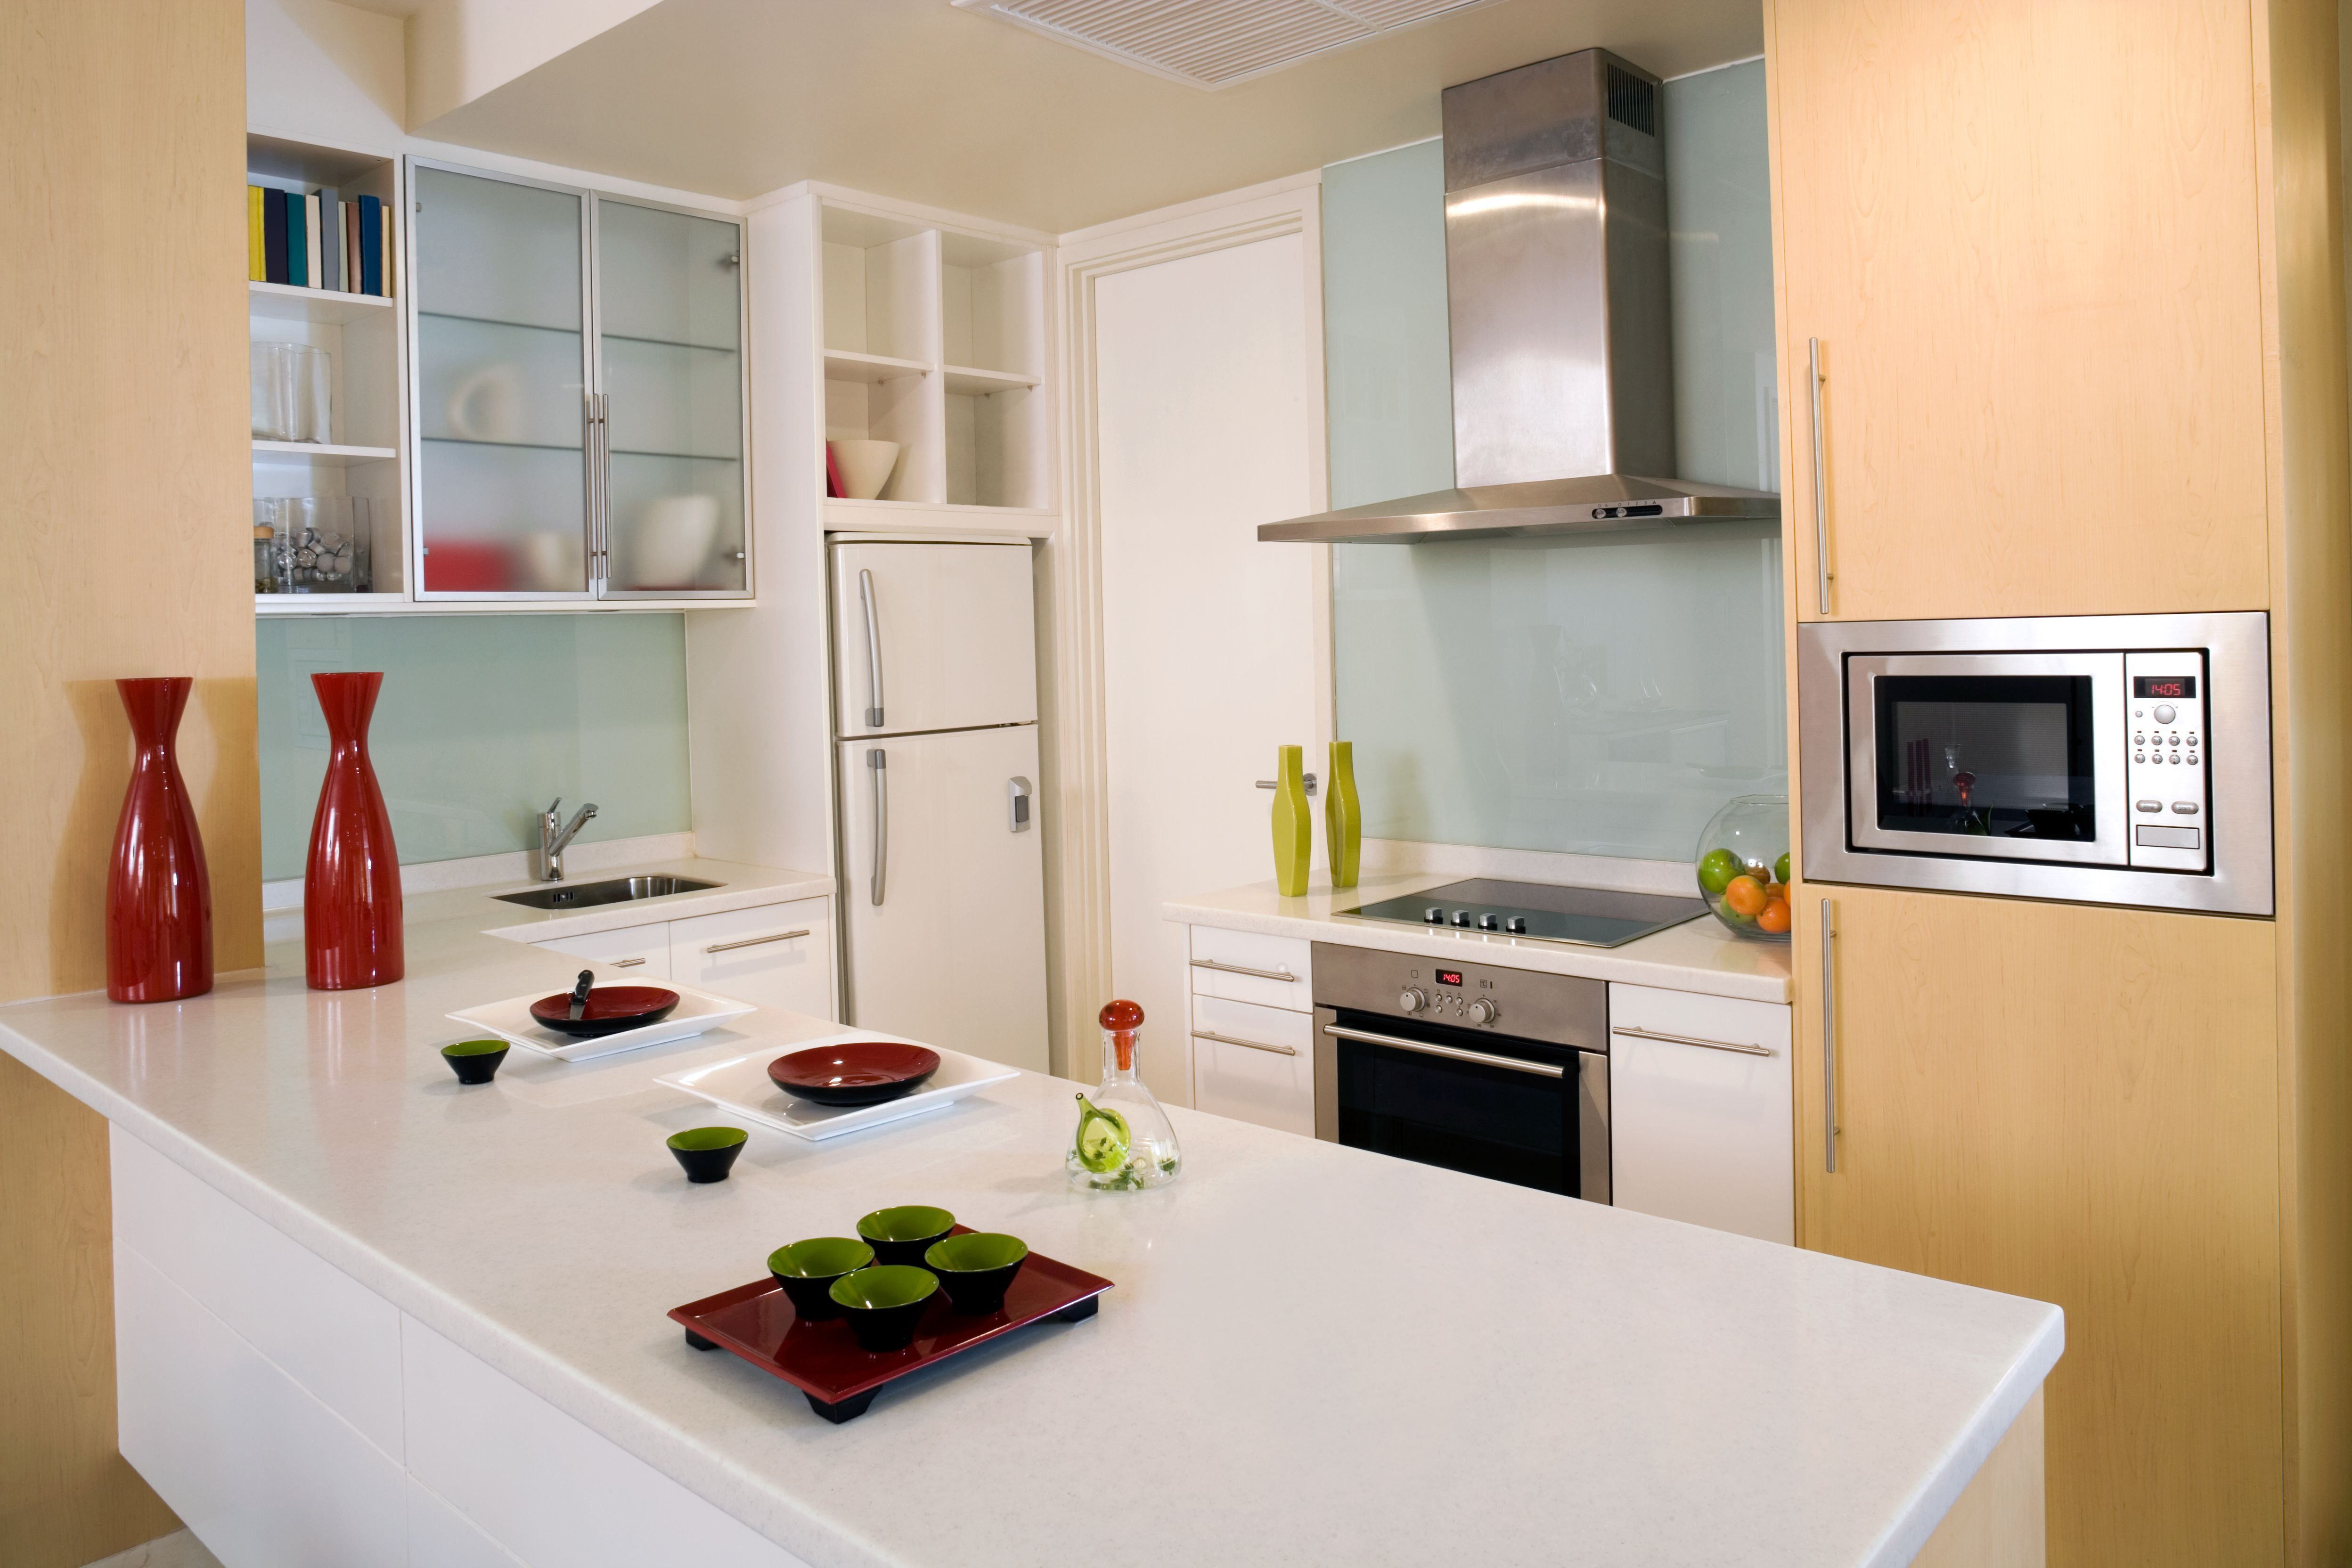 Why You Should Buy a Laminate Countertop for Your Kitchen or Bathroom